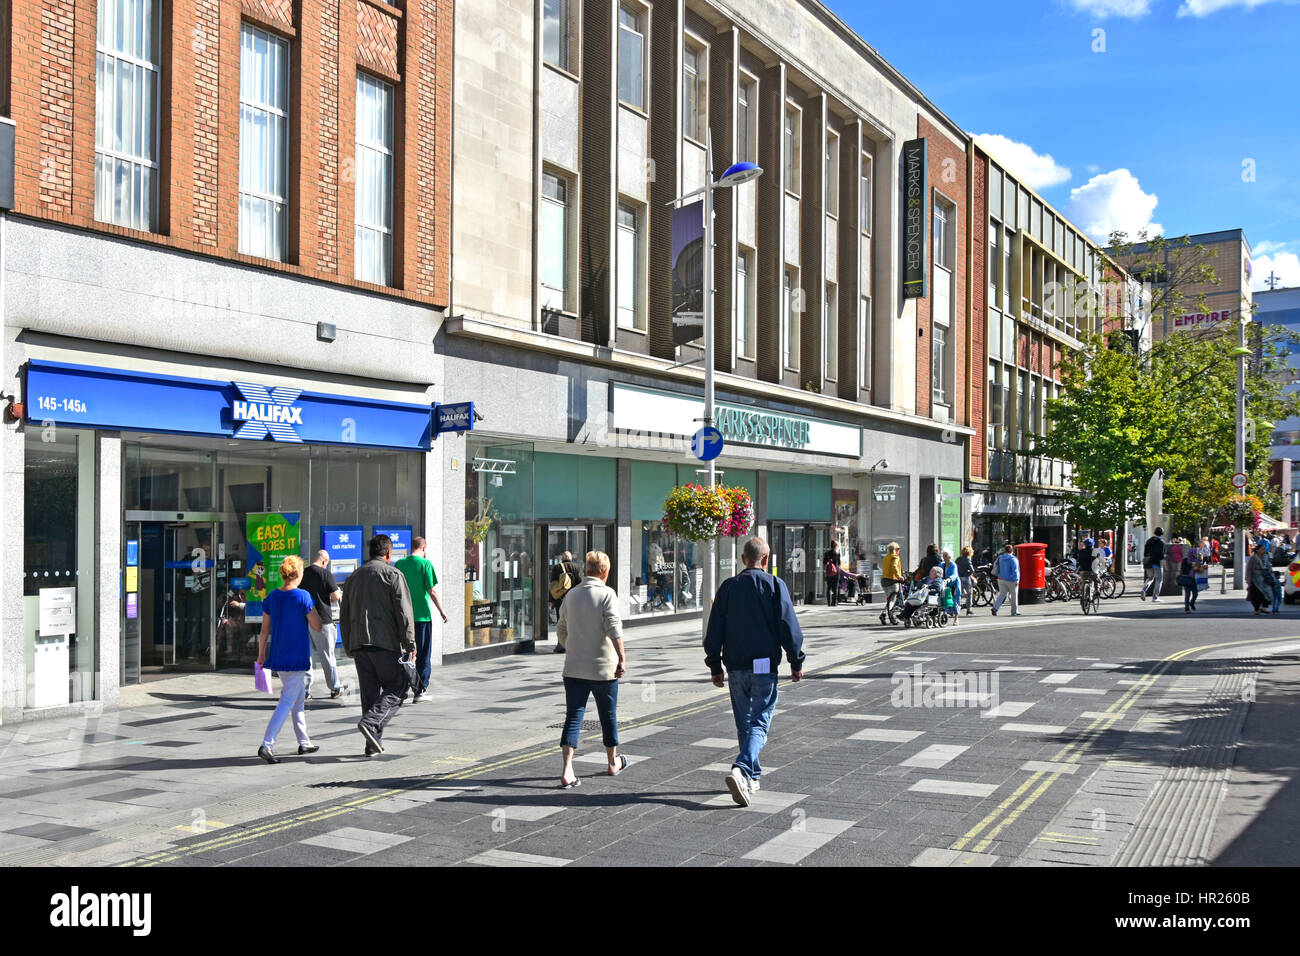 Slough Berkshire UK high street retail shopping centre Halifax Bank Branch & M&S store people walk along - Stock Image